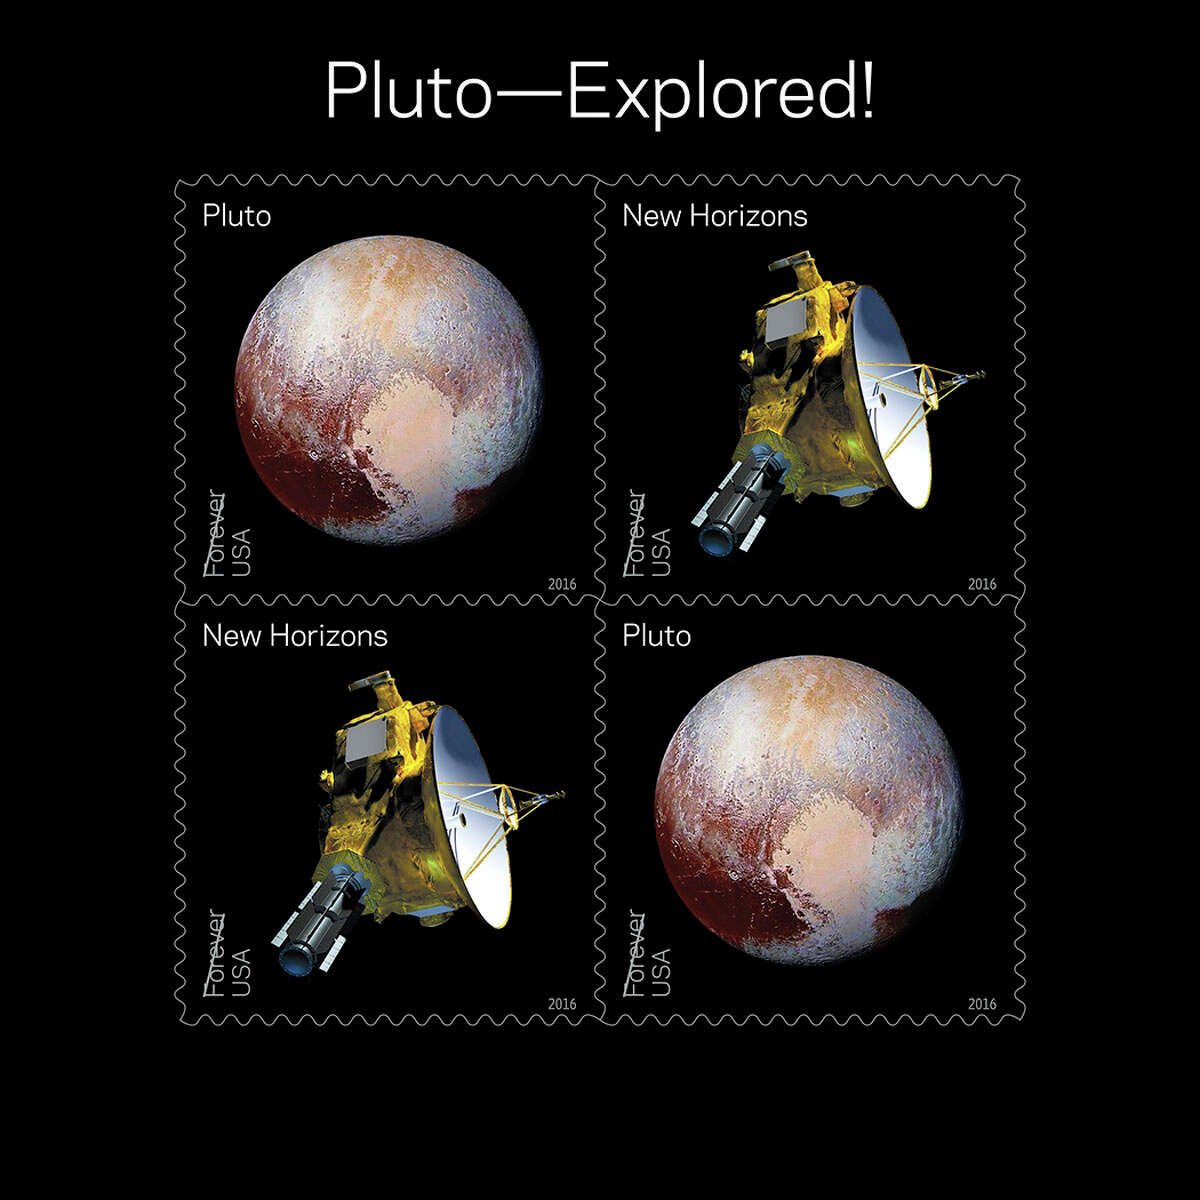 """Pluto - Explored! In 2006, NASA placed a 29-cent 1991 Pluto: Not Yet Explored stamp in the New Horizons spacecraft. In 2015 the spacecraft carried the stamp on its history-making mission to Pluto and beyond. """"The New Horizons project is proud to have such an important honor from the U.S. Postal Service,"""" said Alan Stern, New Horizons lead scientist from the Southwest Research Institute in Boulder, CO. """"Since the early 1990s the old, 'Pluto Not Yet Explored' stamp served as a rallying cry for many who wanted to mount this historic mission of space exploration. Now that NASA's New Horizons has accomplished that goal, it's a wonderful feeling to see these new stamps join others commemorating first explorations of the planets."""" The souvenir sheet of four stamps contains two new stamps appearing twice. The first stamp shows an artists' rendering of the New Horizons spacecraft and the second shows the spacecraft's image of Pluto taken near its closest approach.(© Copyright 2016 USPS)"""